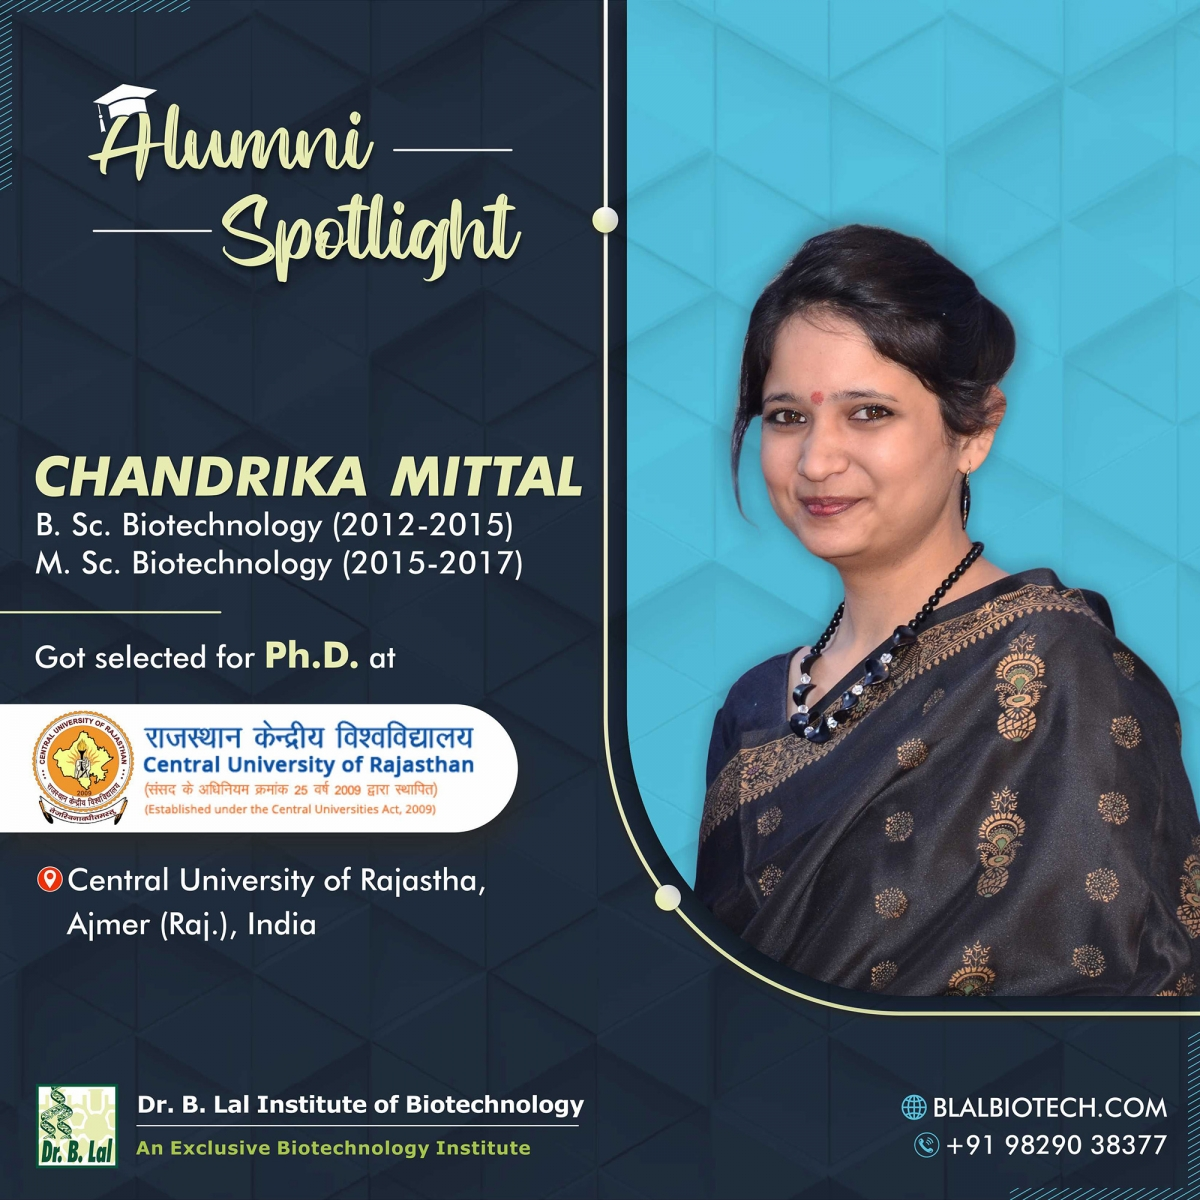 Ms. Chandrika Mittal   Selected for Ph.D. at Central University of Rajasthan, Ajmer